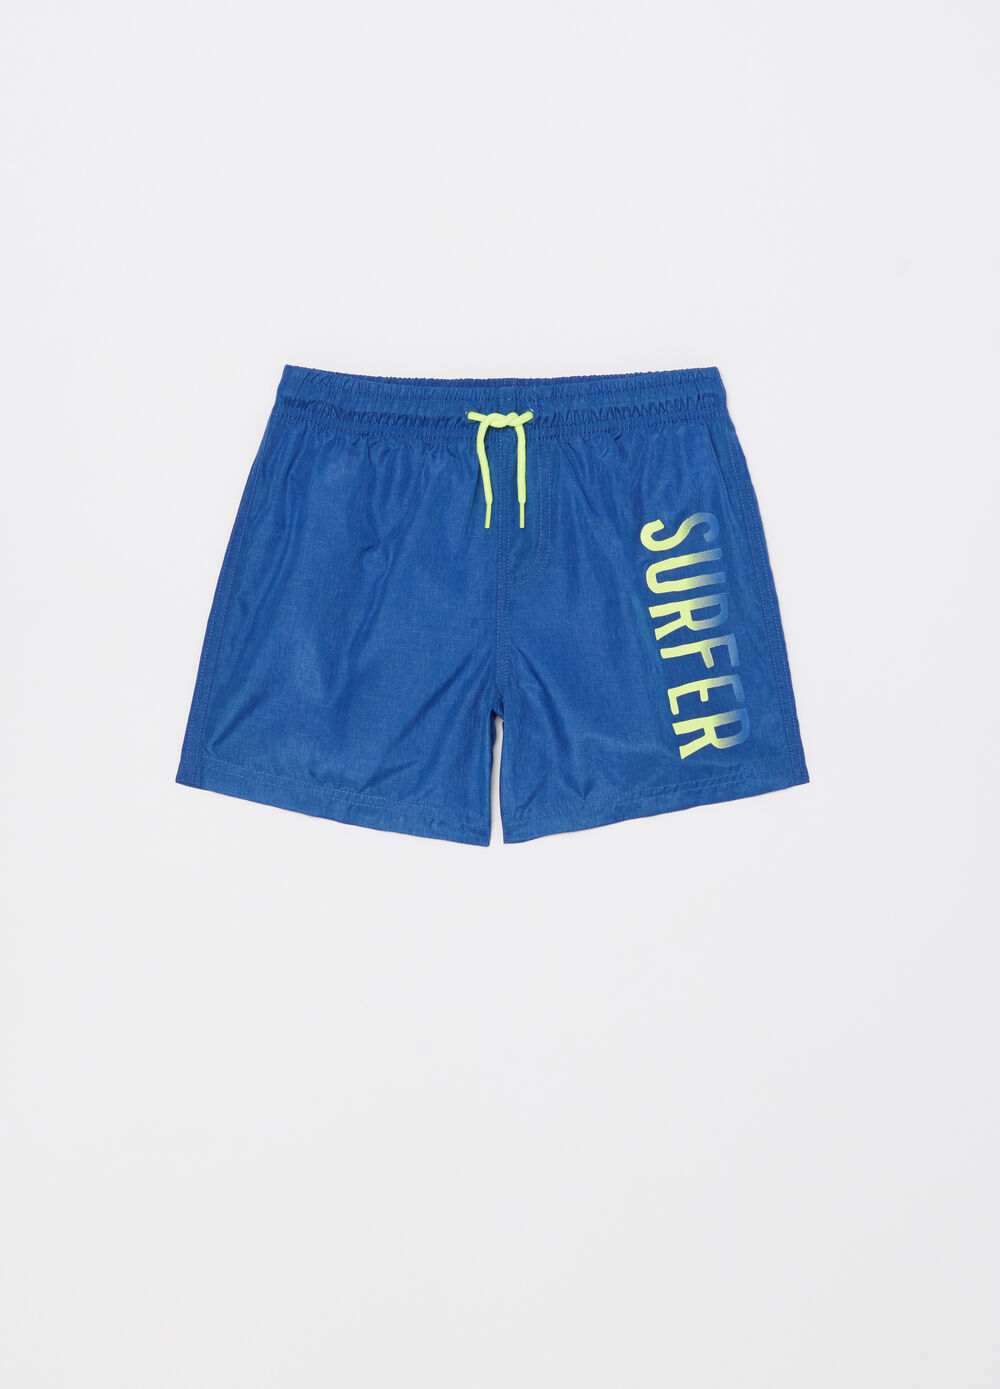 Boxer shorts with pocket, print and drawstring